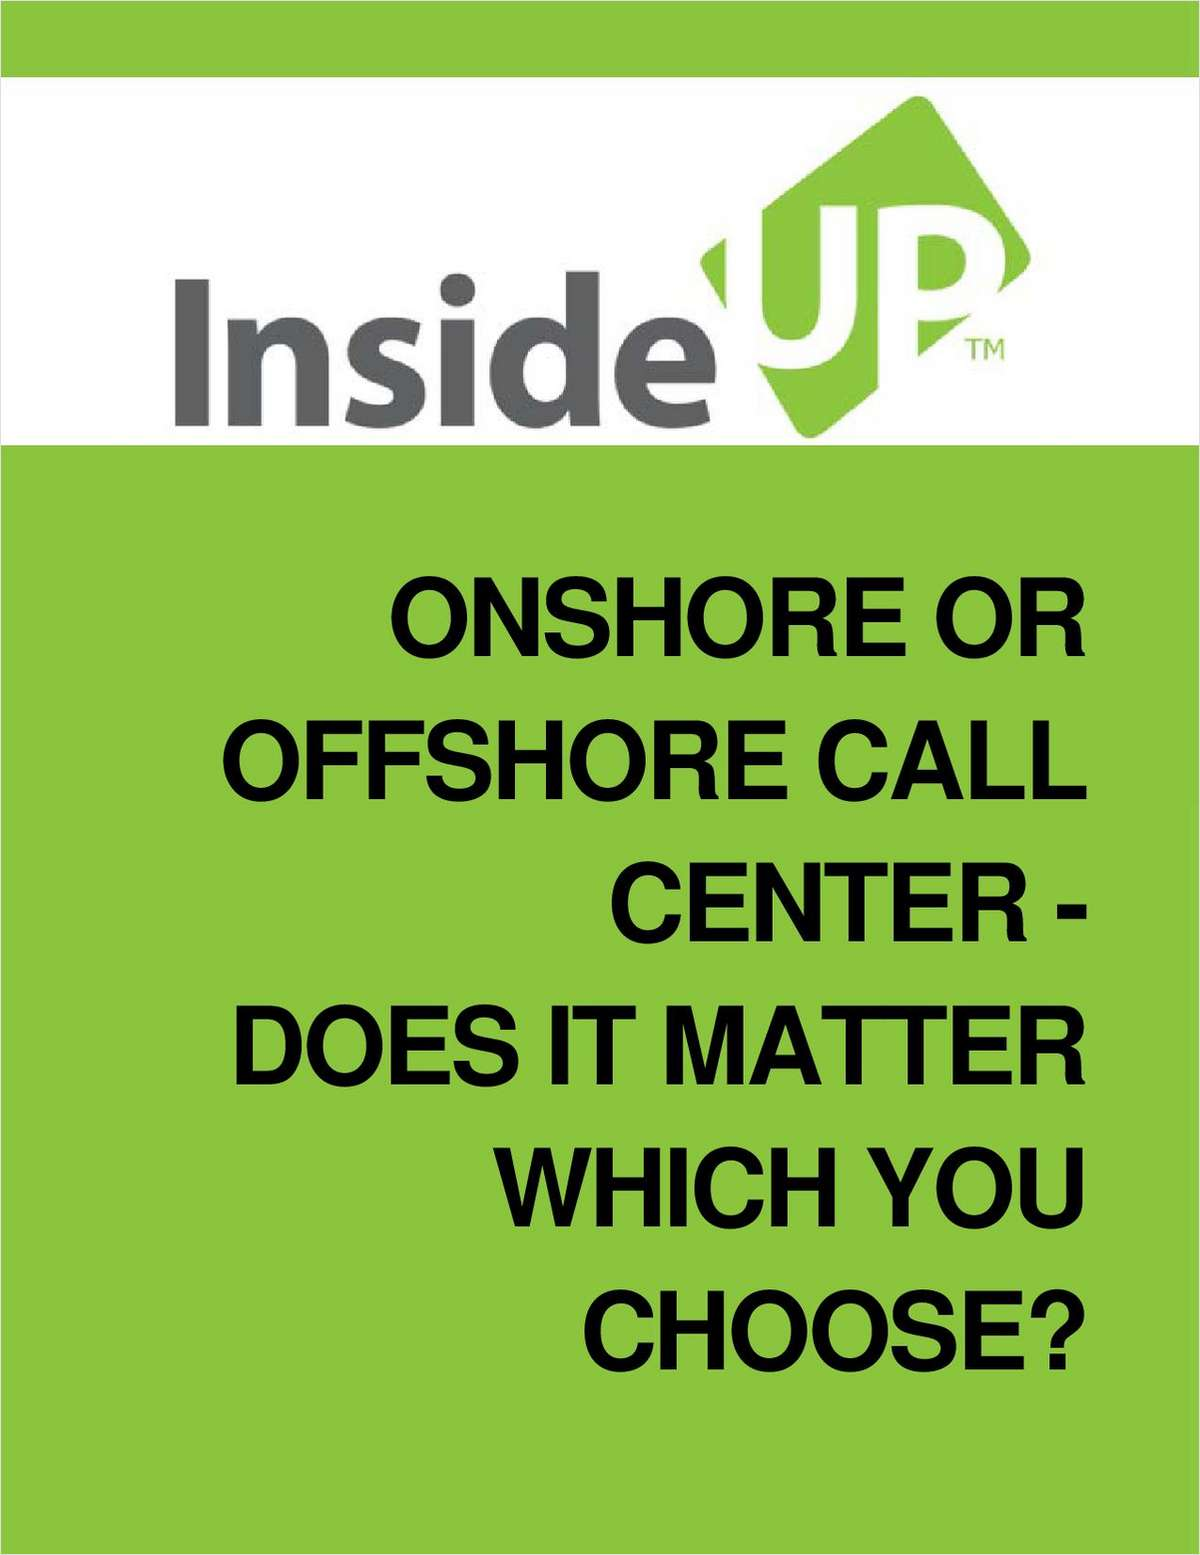 Onshore or Offshore Call Center - Does It Matter Which You Choose?